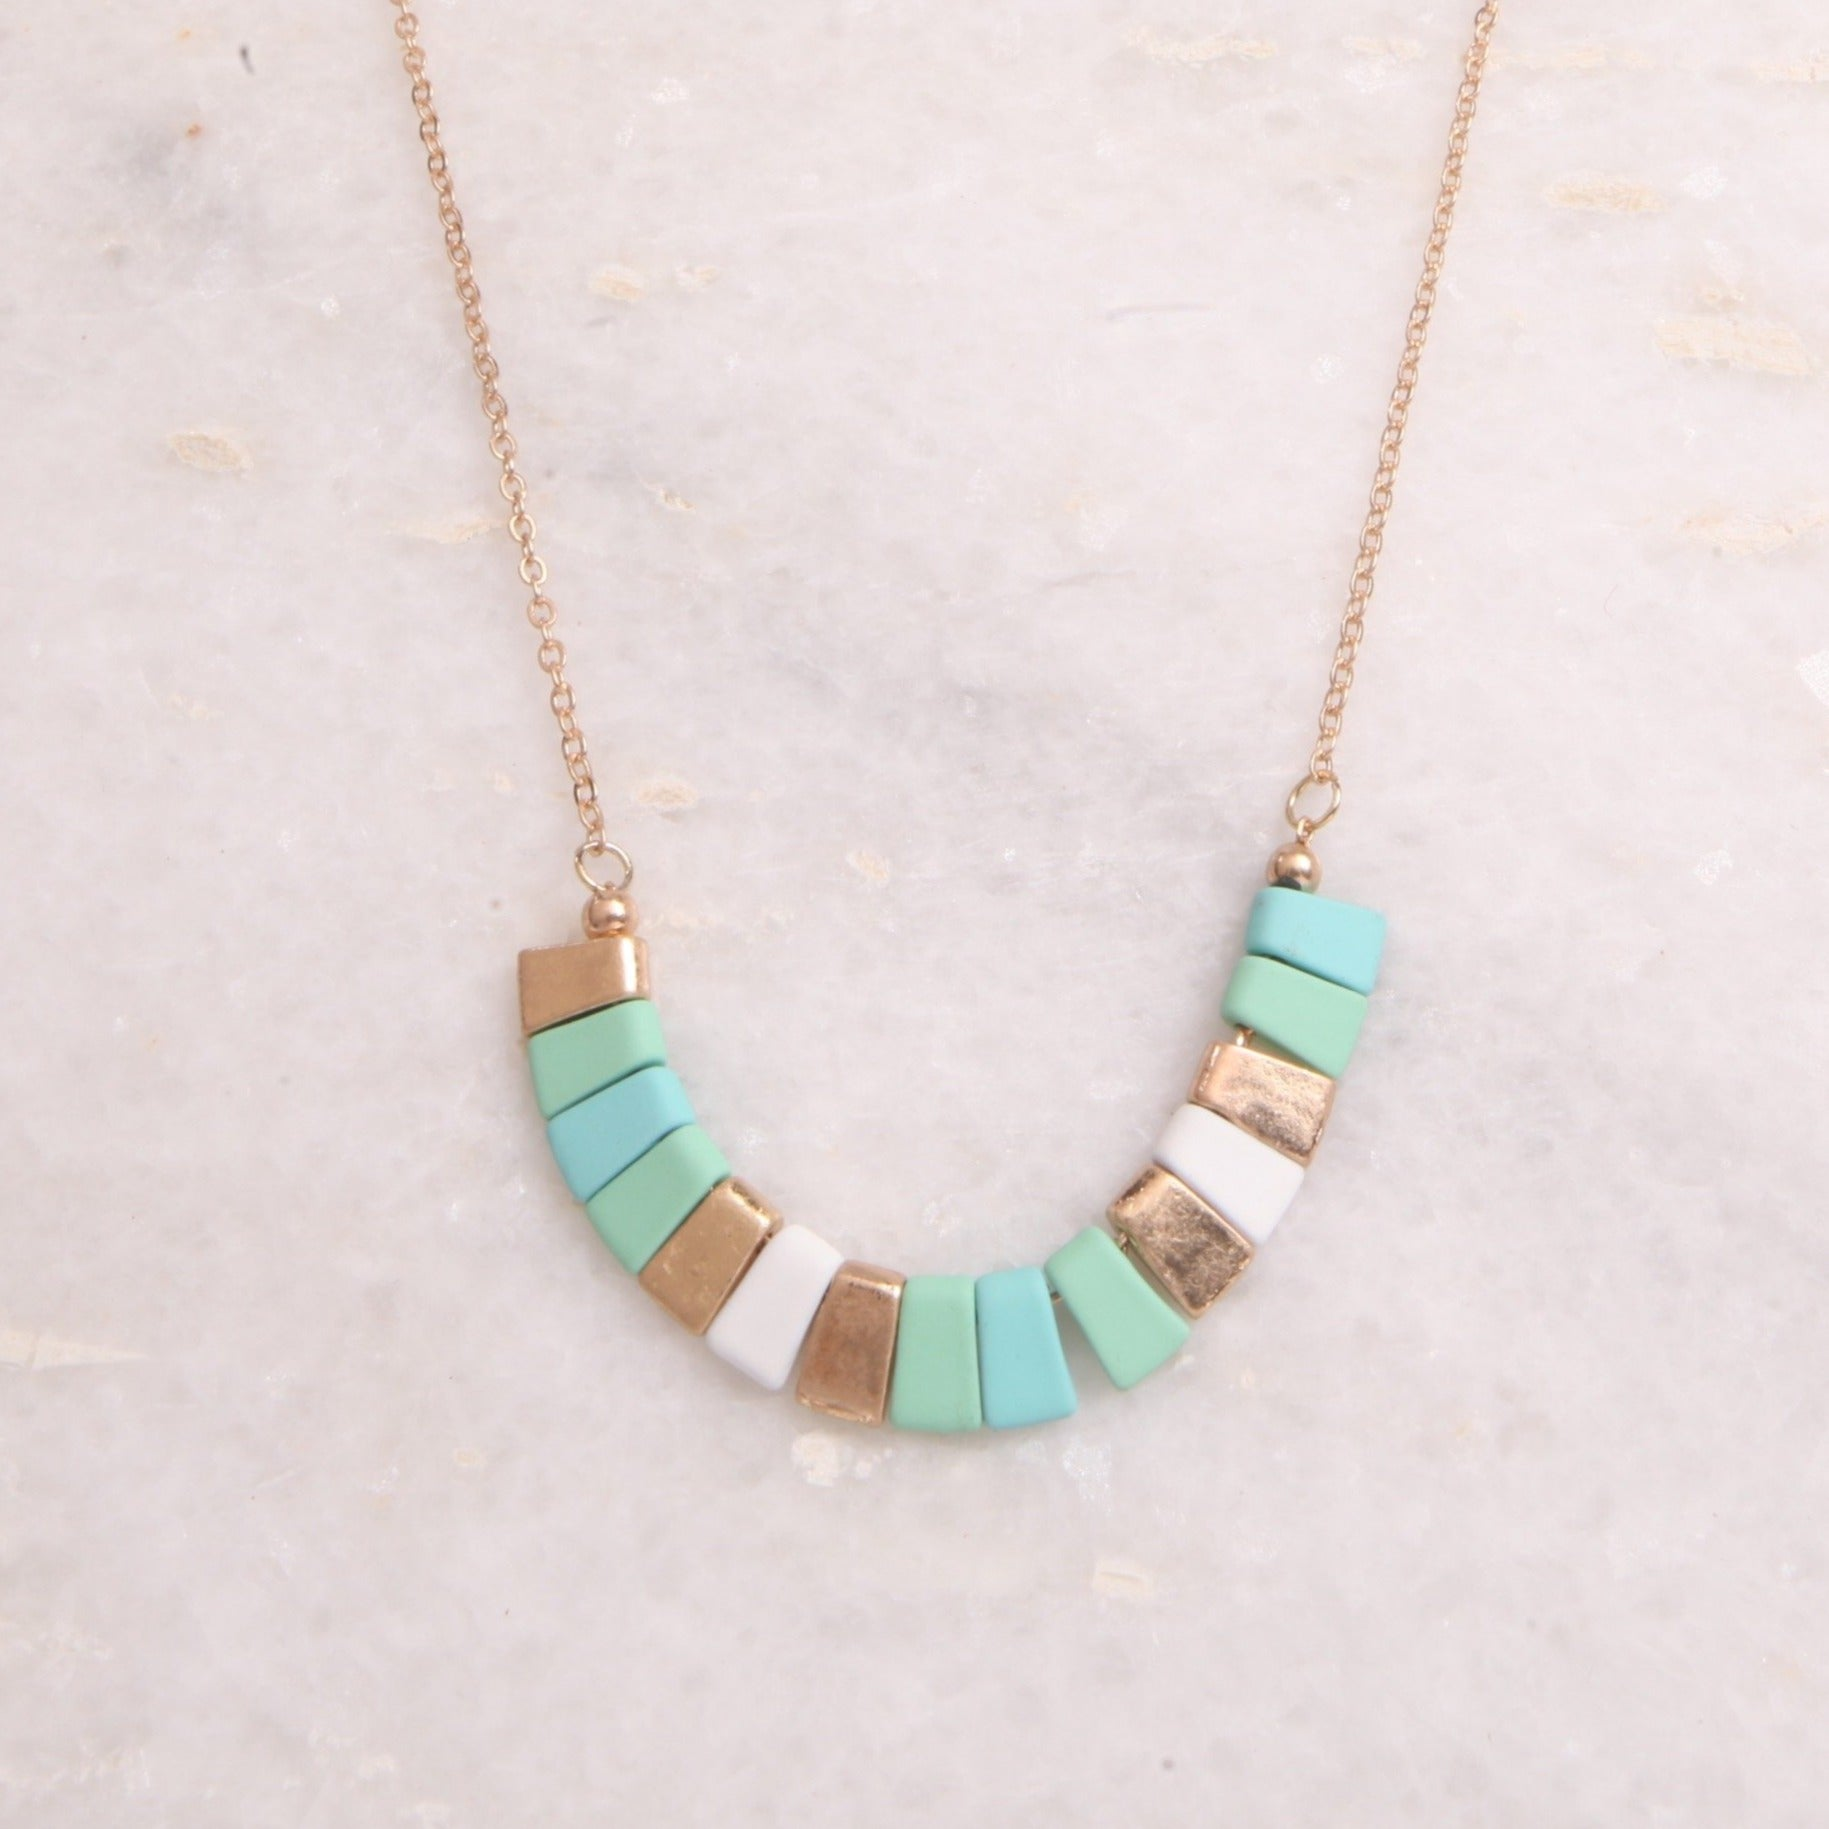 Turquoise Rectangles Necklace